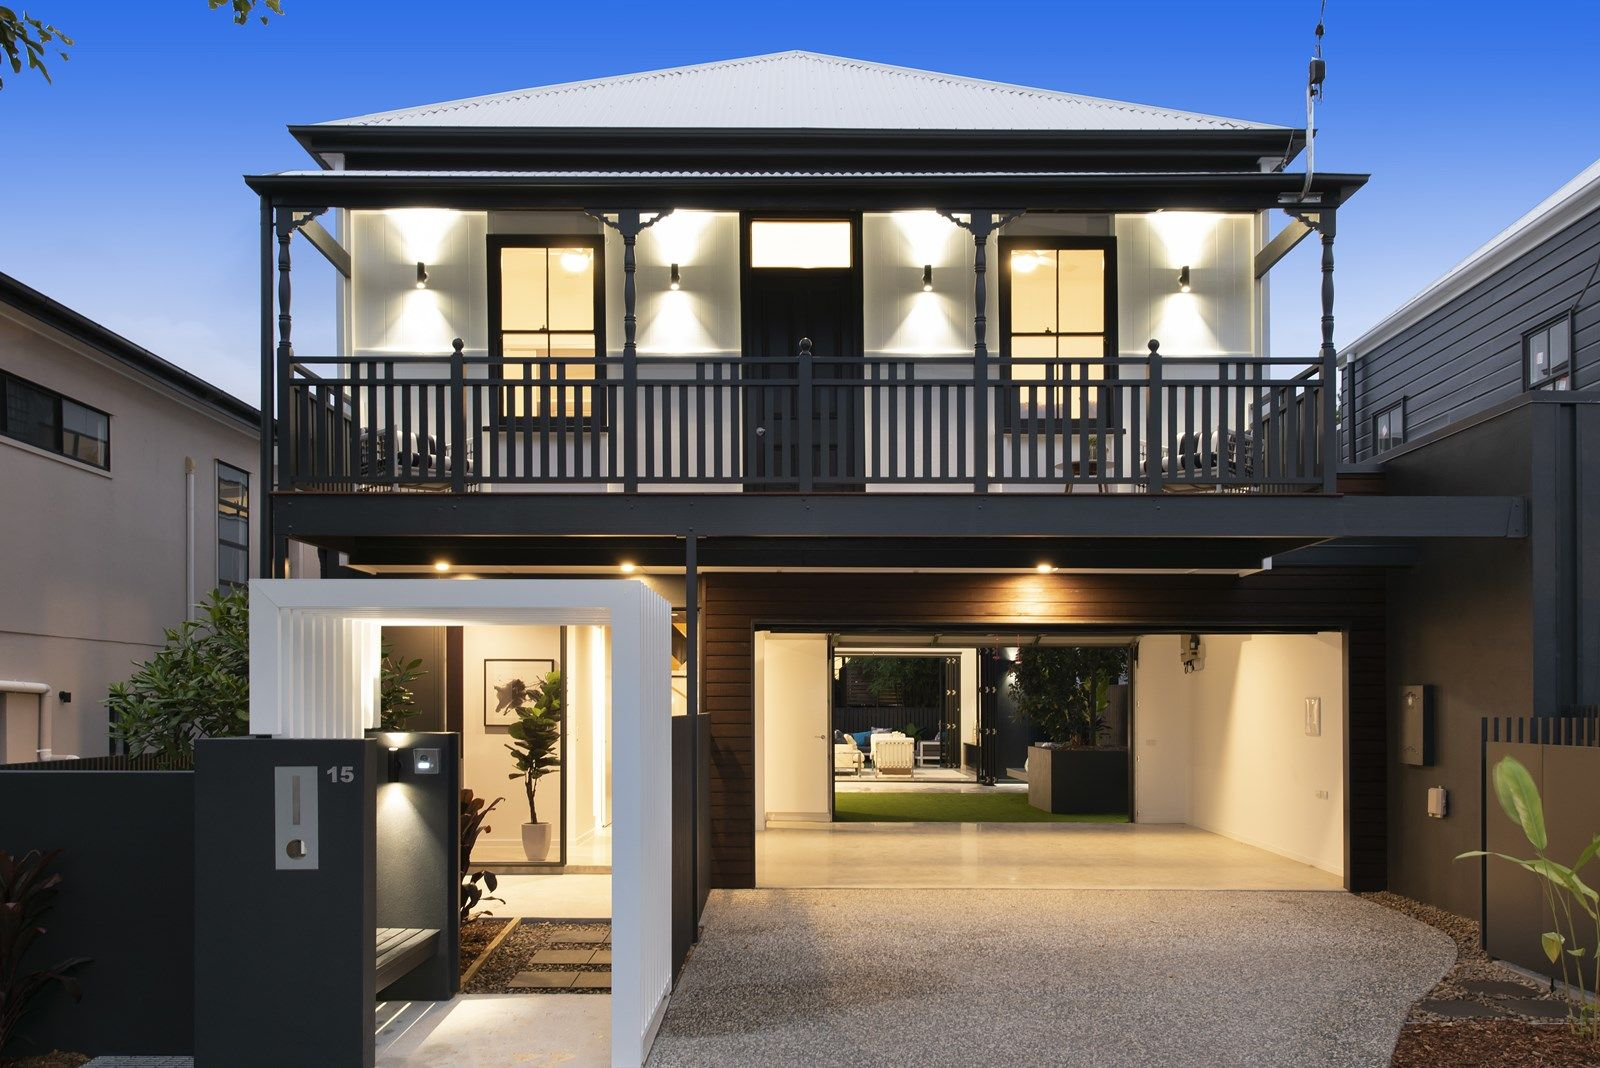 4 bedroom house for Sale at 15 Bailey Street, New Farm QLD